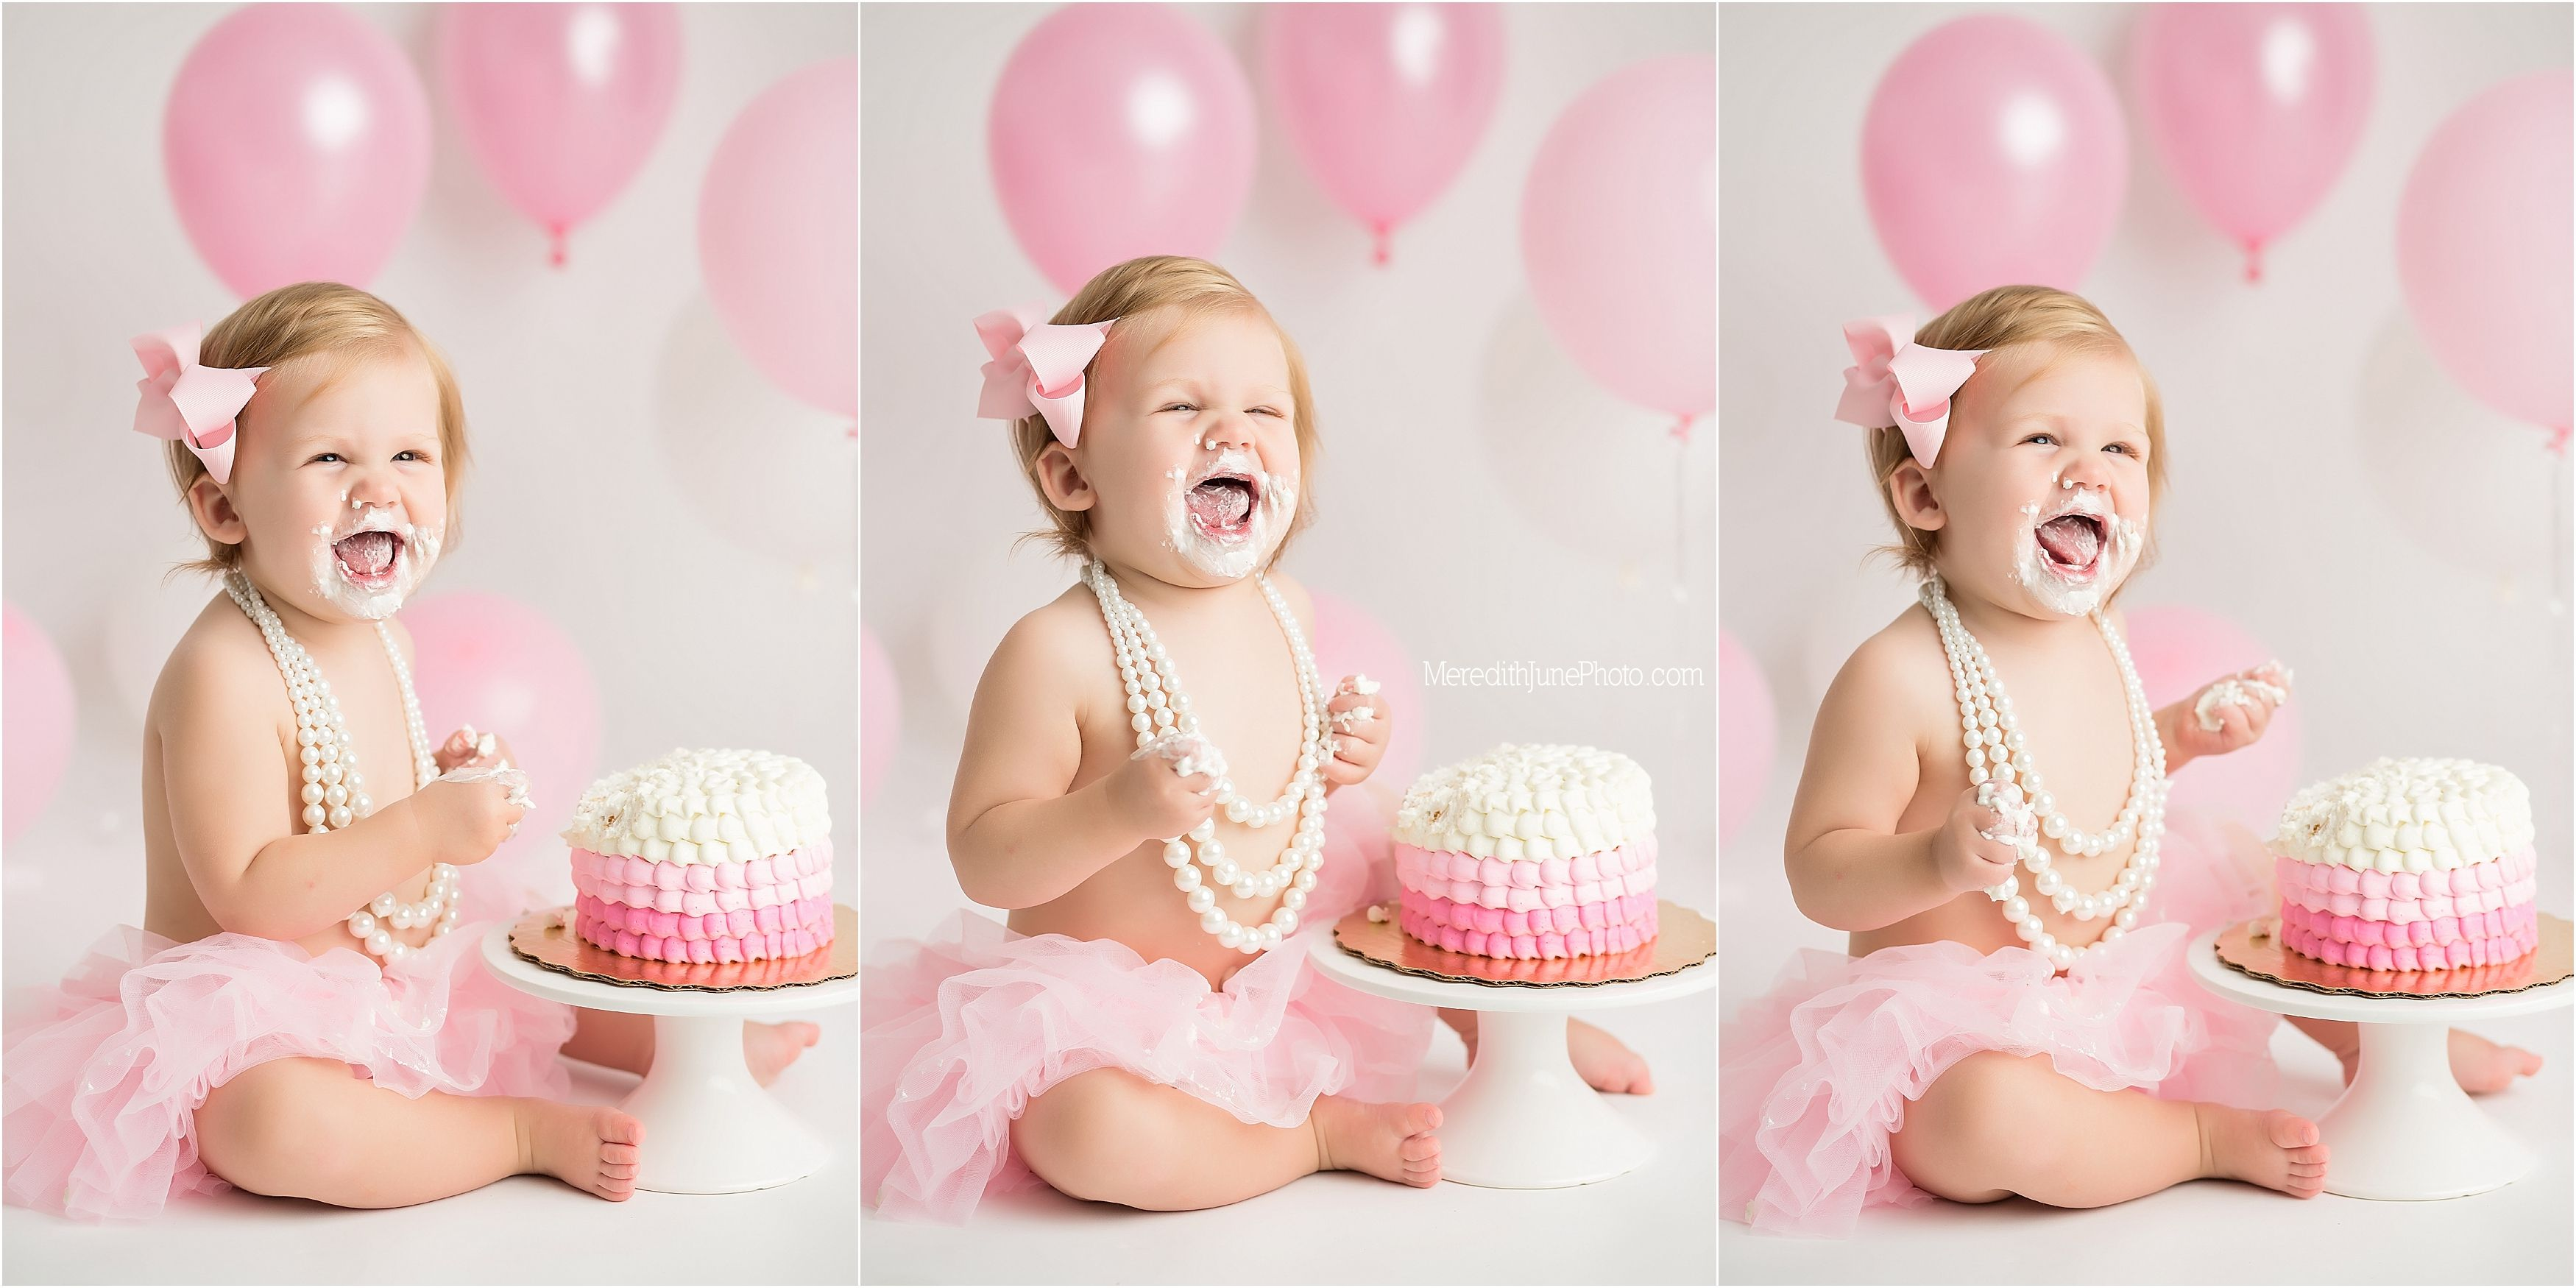 Baby Girl Cake Smash Session With Images Baby Photoshoot Girl